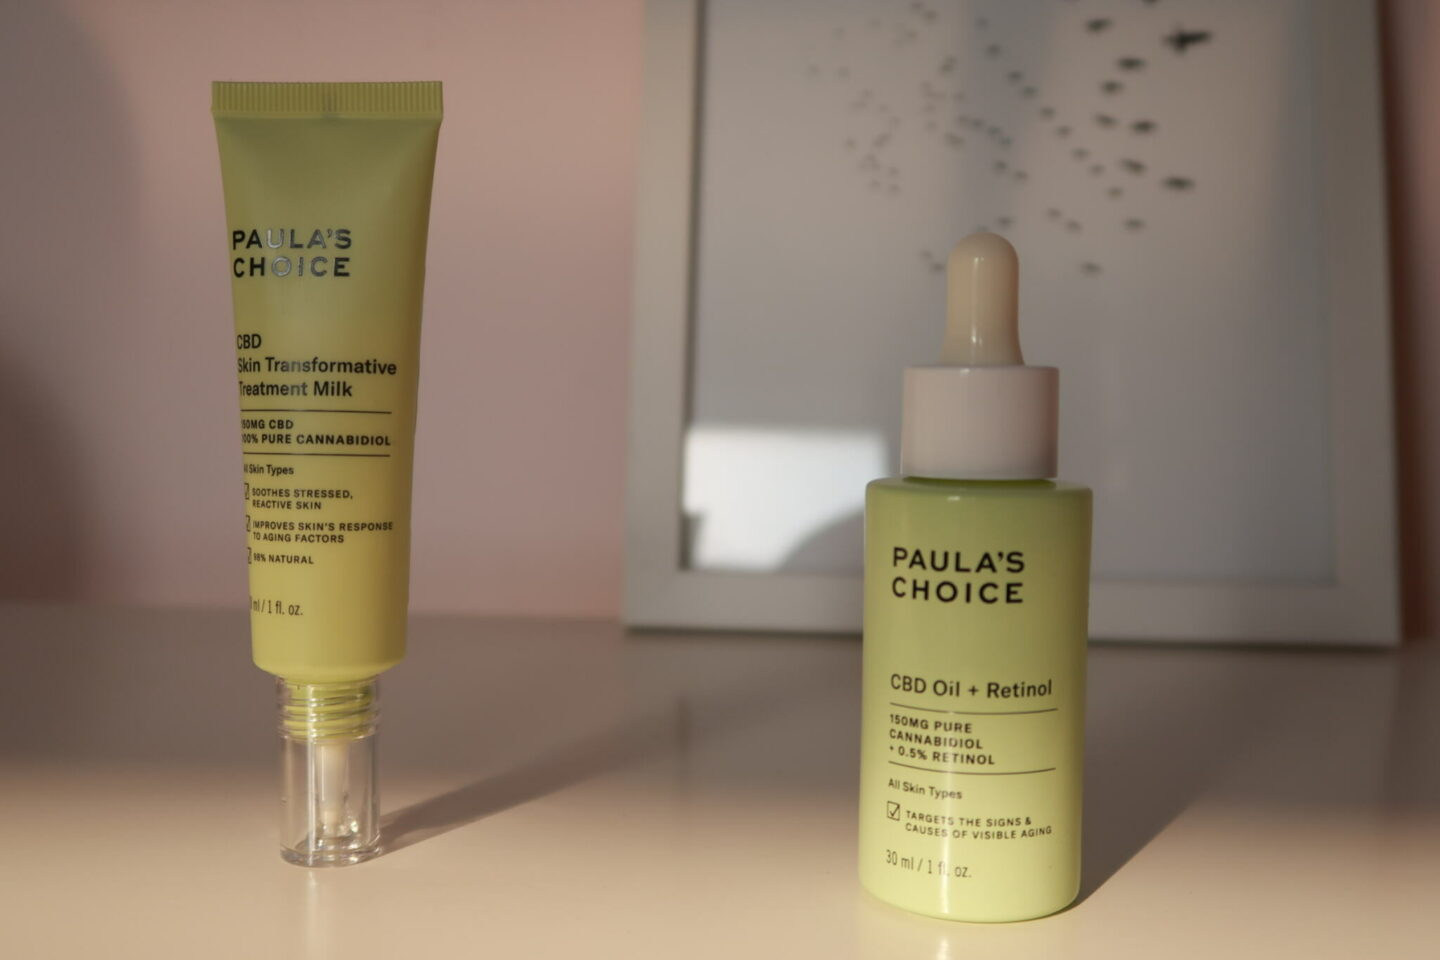 Paula's Choice CBD Transformative Skin Treatment Milk and CBD Oil + Retinol.    #cbd #skincare #beauty #soins #routinesoins #skincareroutine #paulaschoice #retinol #inflammedskin